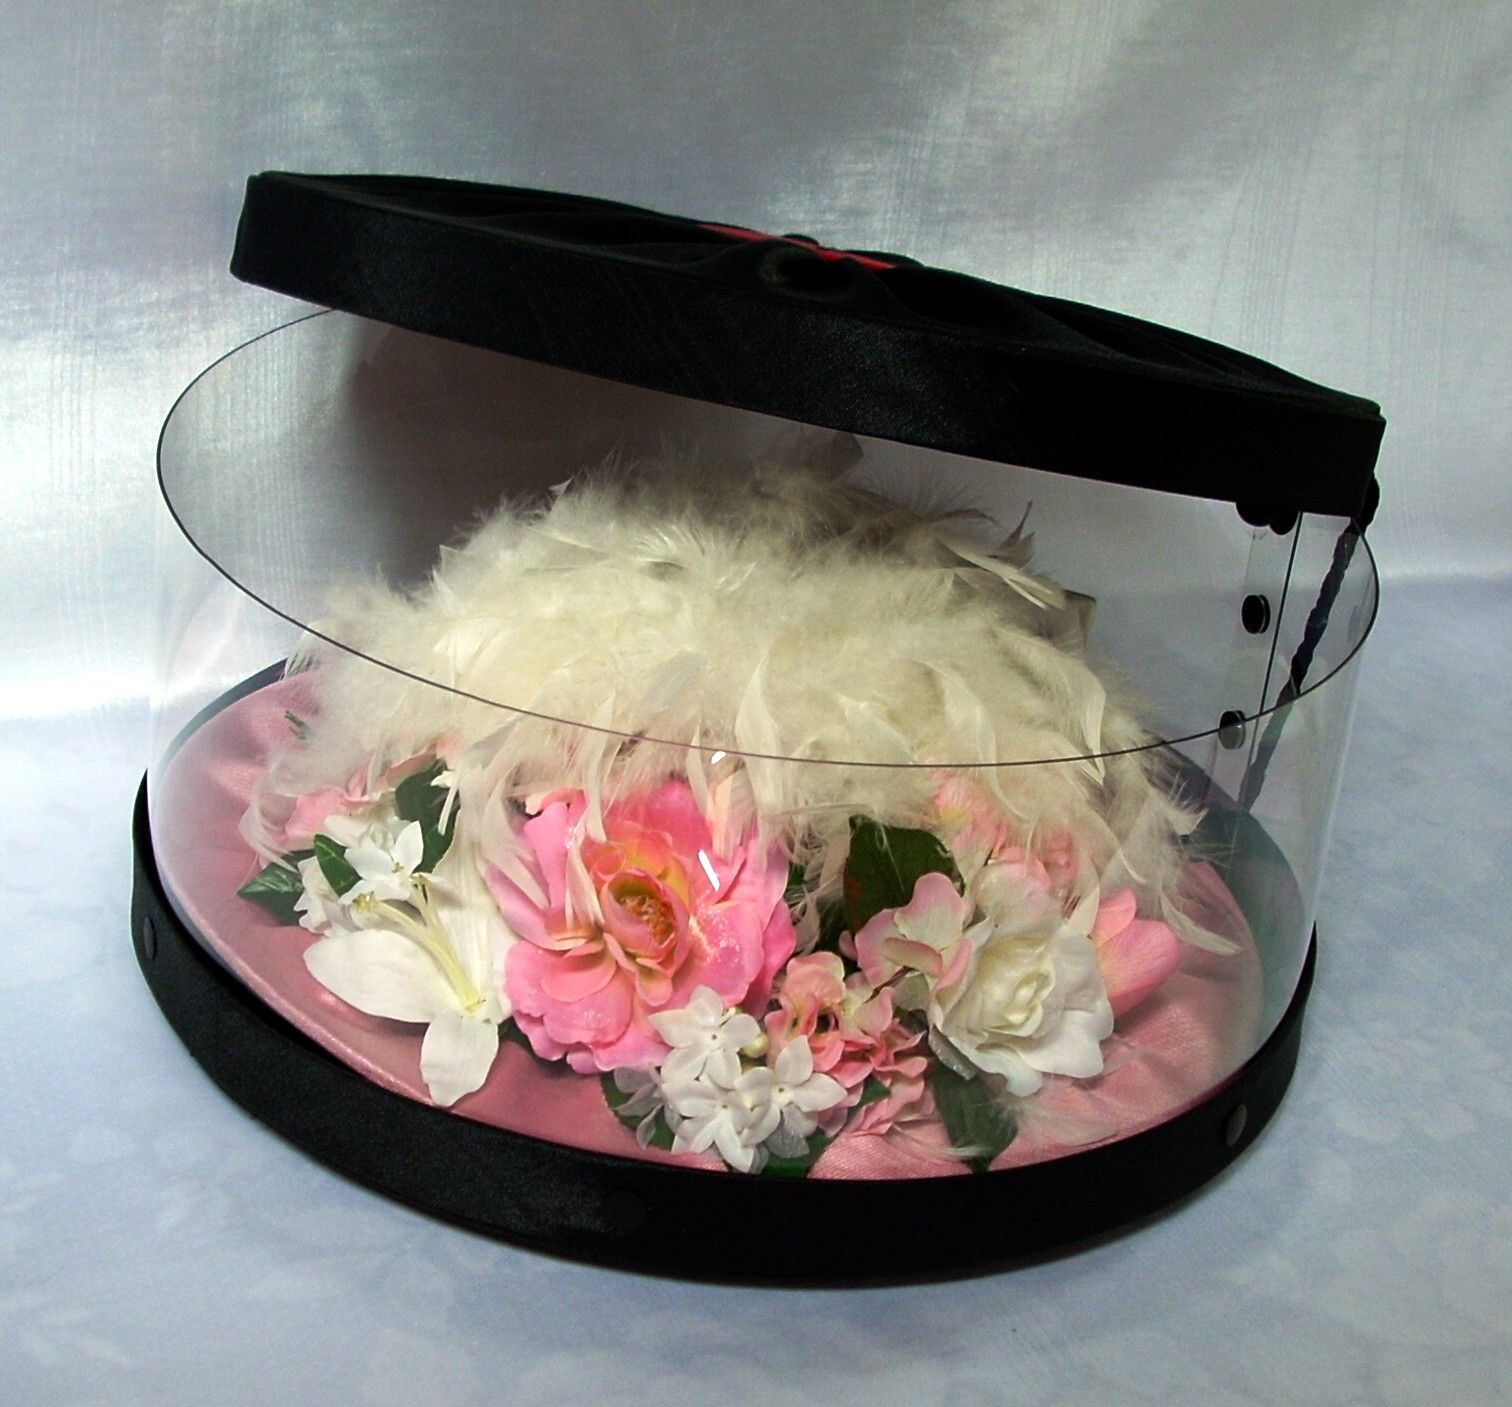 Amazing My Next DIY: Clear Hat Box | ღ ♥ ღHat Boxes, Suitcases, Storage Boxes U0026  Pretty Gift Wrap Boxesღ ♥ ღ | Pinterest | Hat Boxes And Box